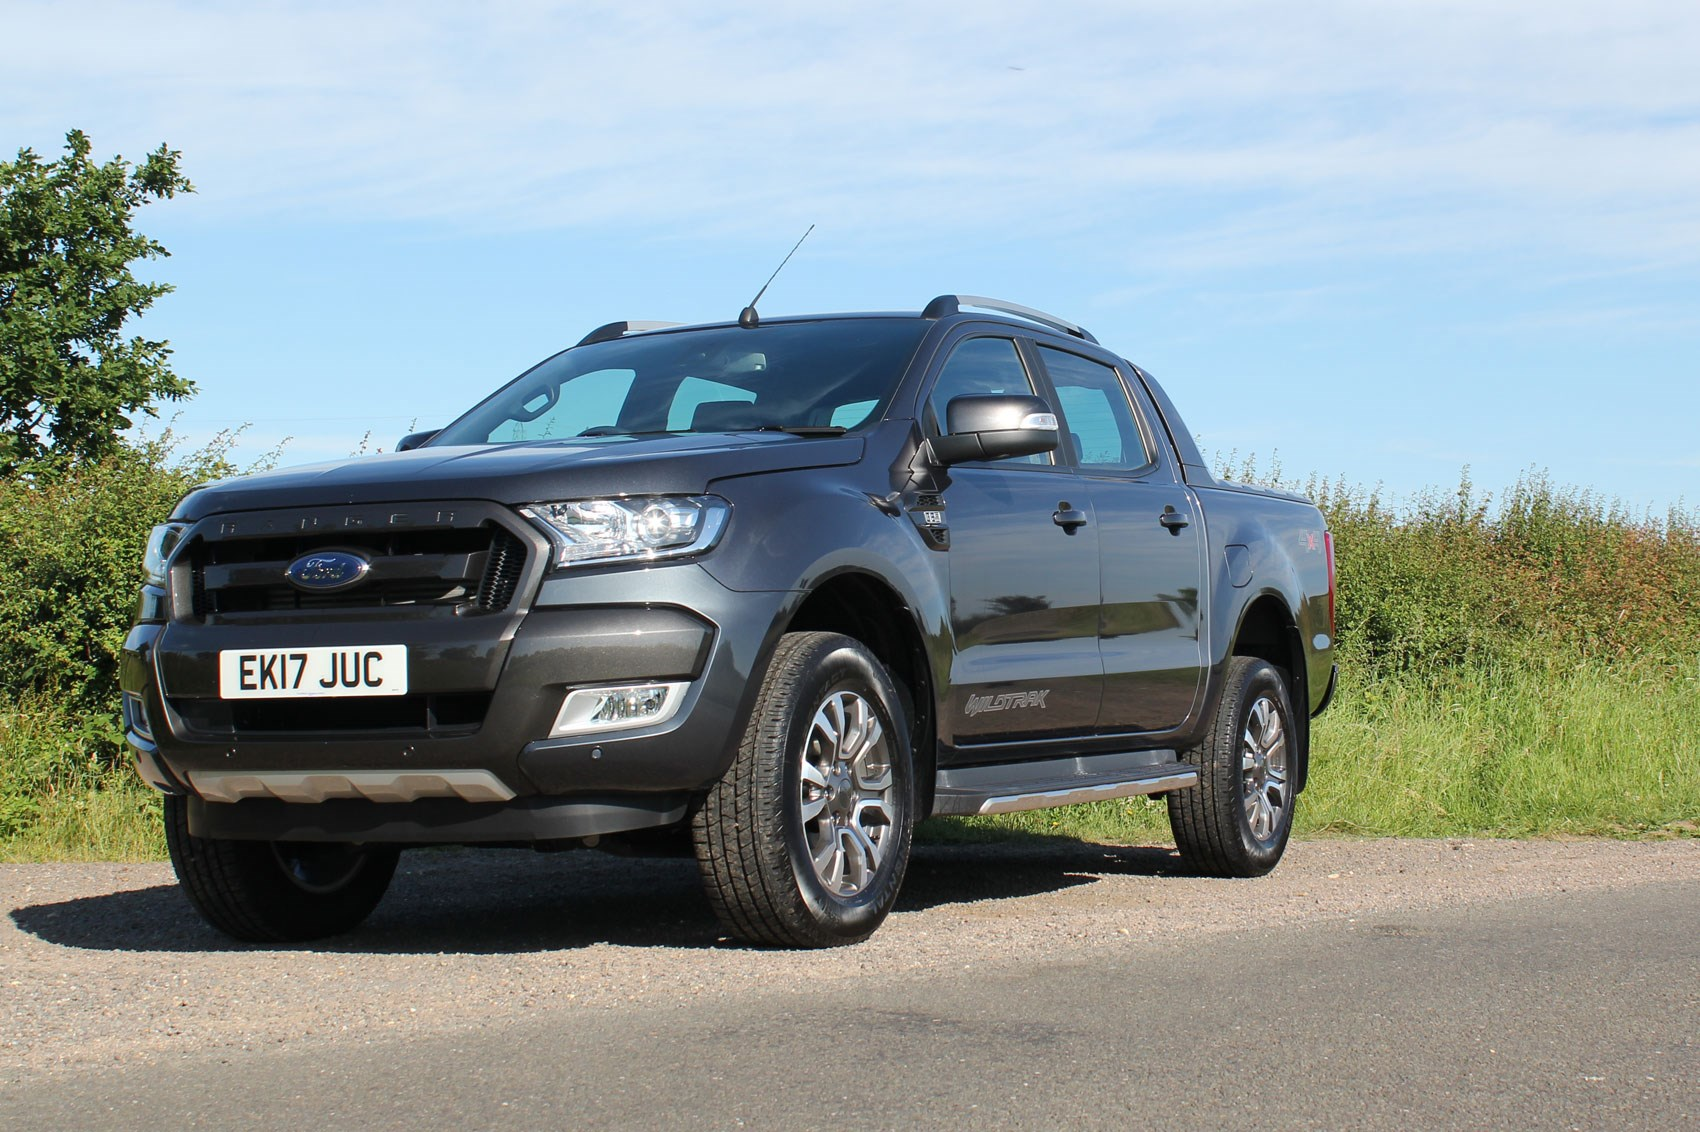 Ford Ranger Wildtrak Euro 6 review - dark grey, front view